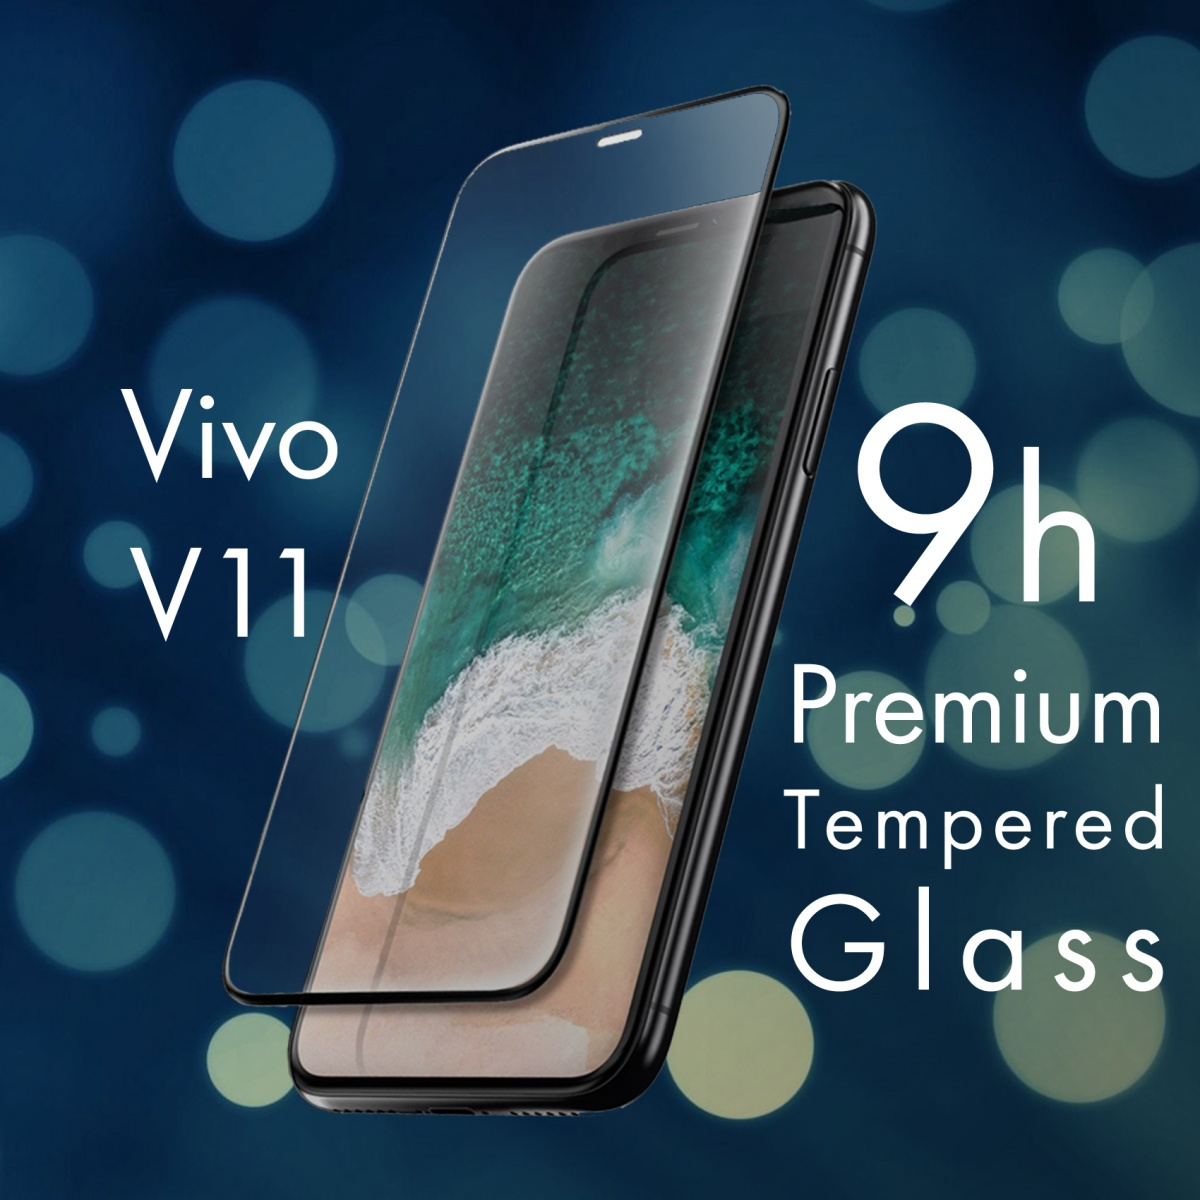 FOR SKU Vivo V11 Full Screen Tempered Glass With Black Lining